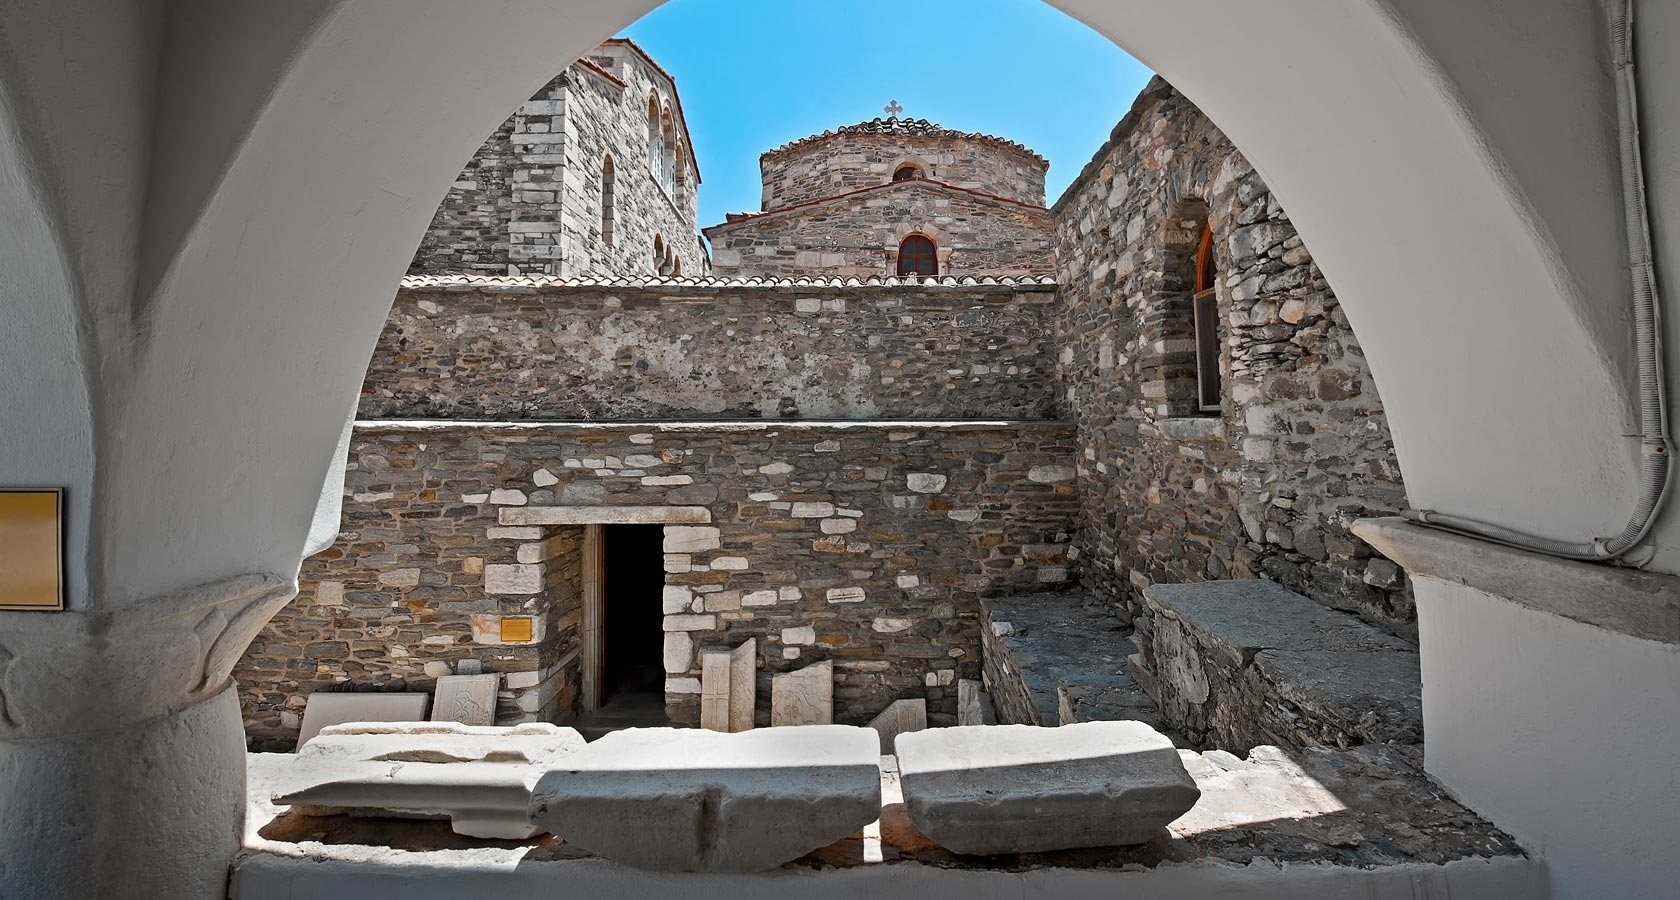 The Ekantotapiliani Church in Paros